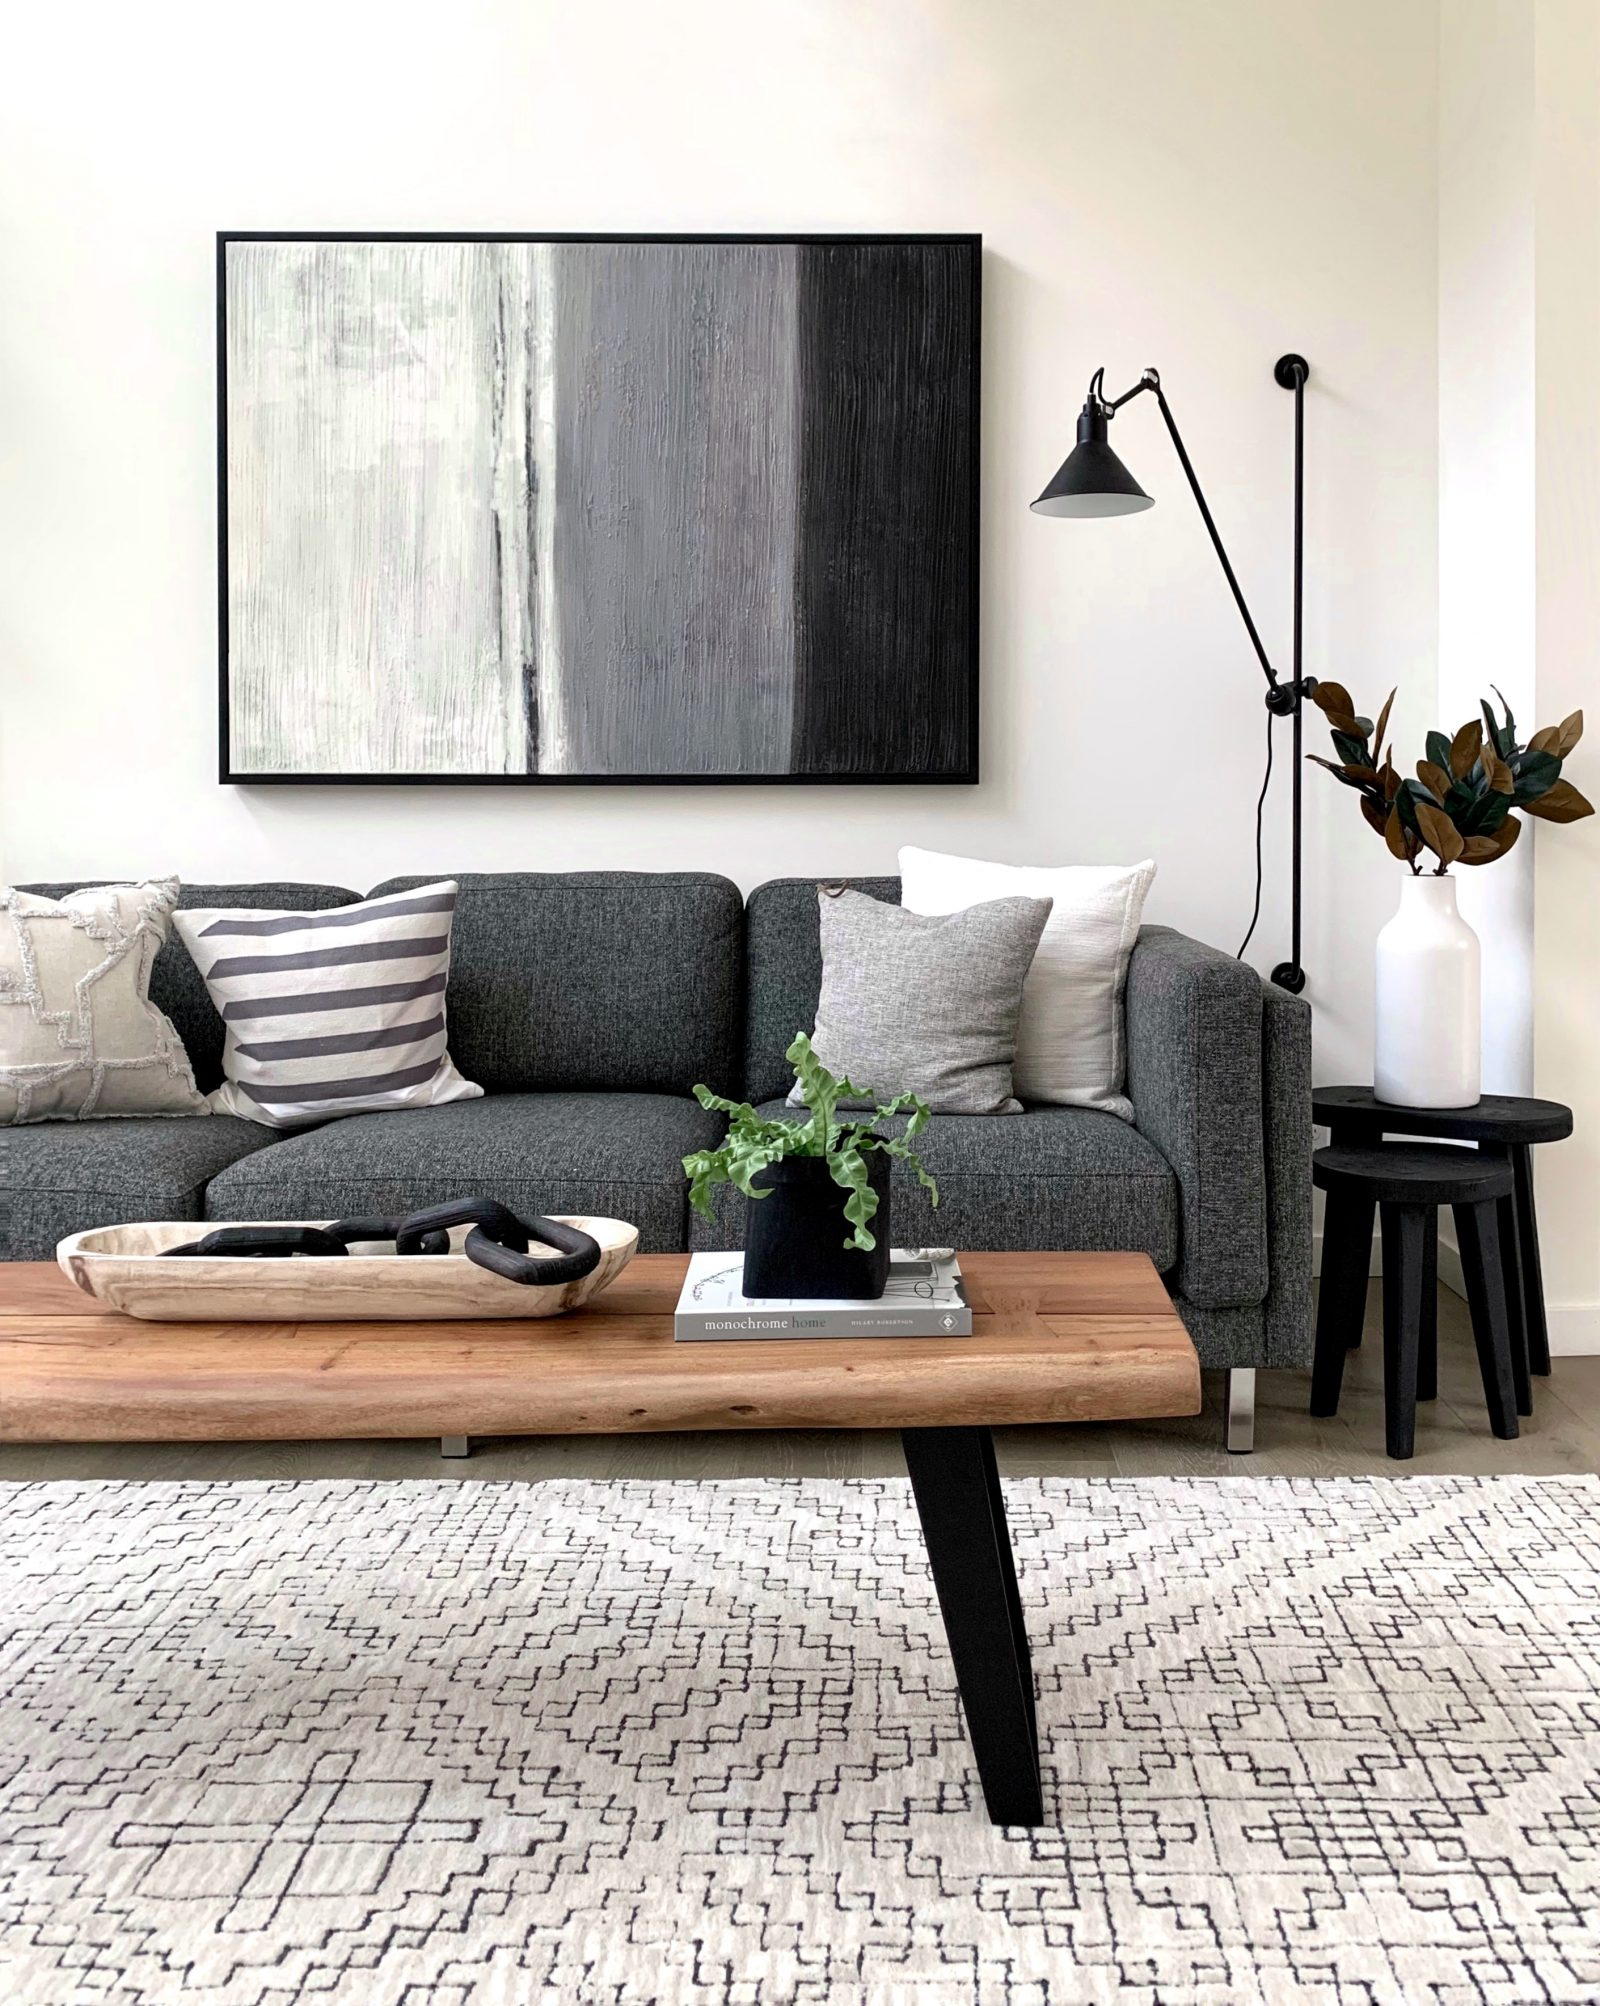 5 Easy Ways To Spruce Up Your Living Room